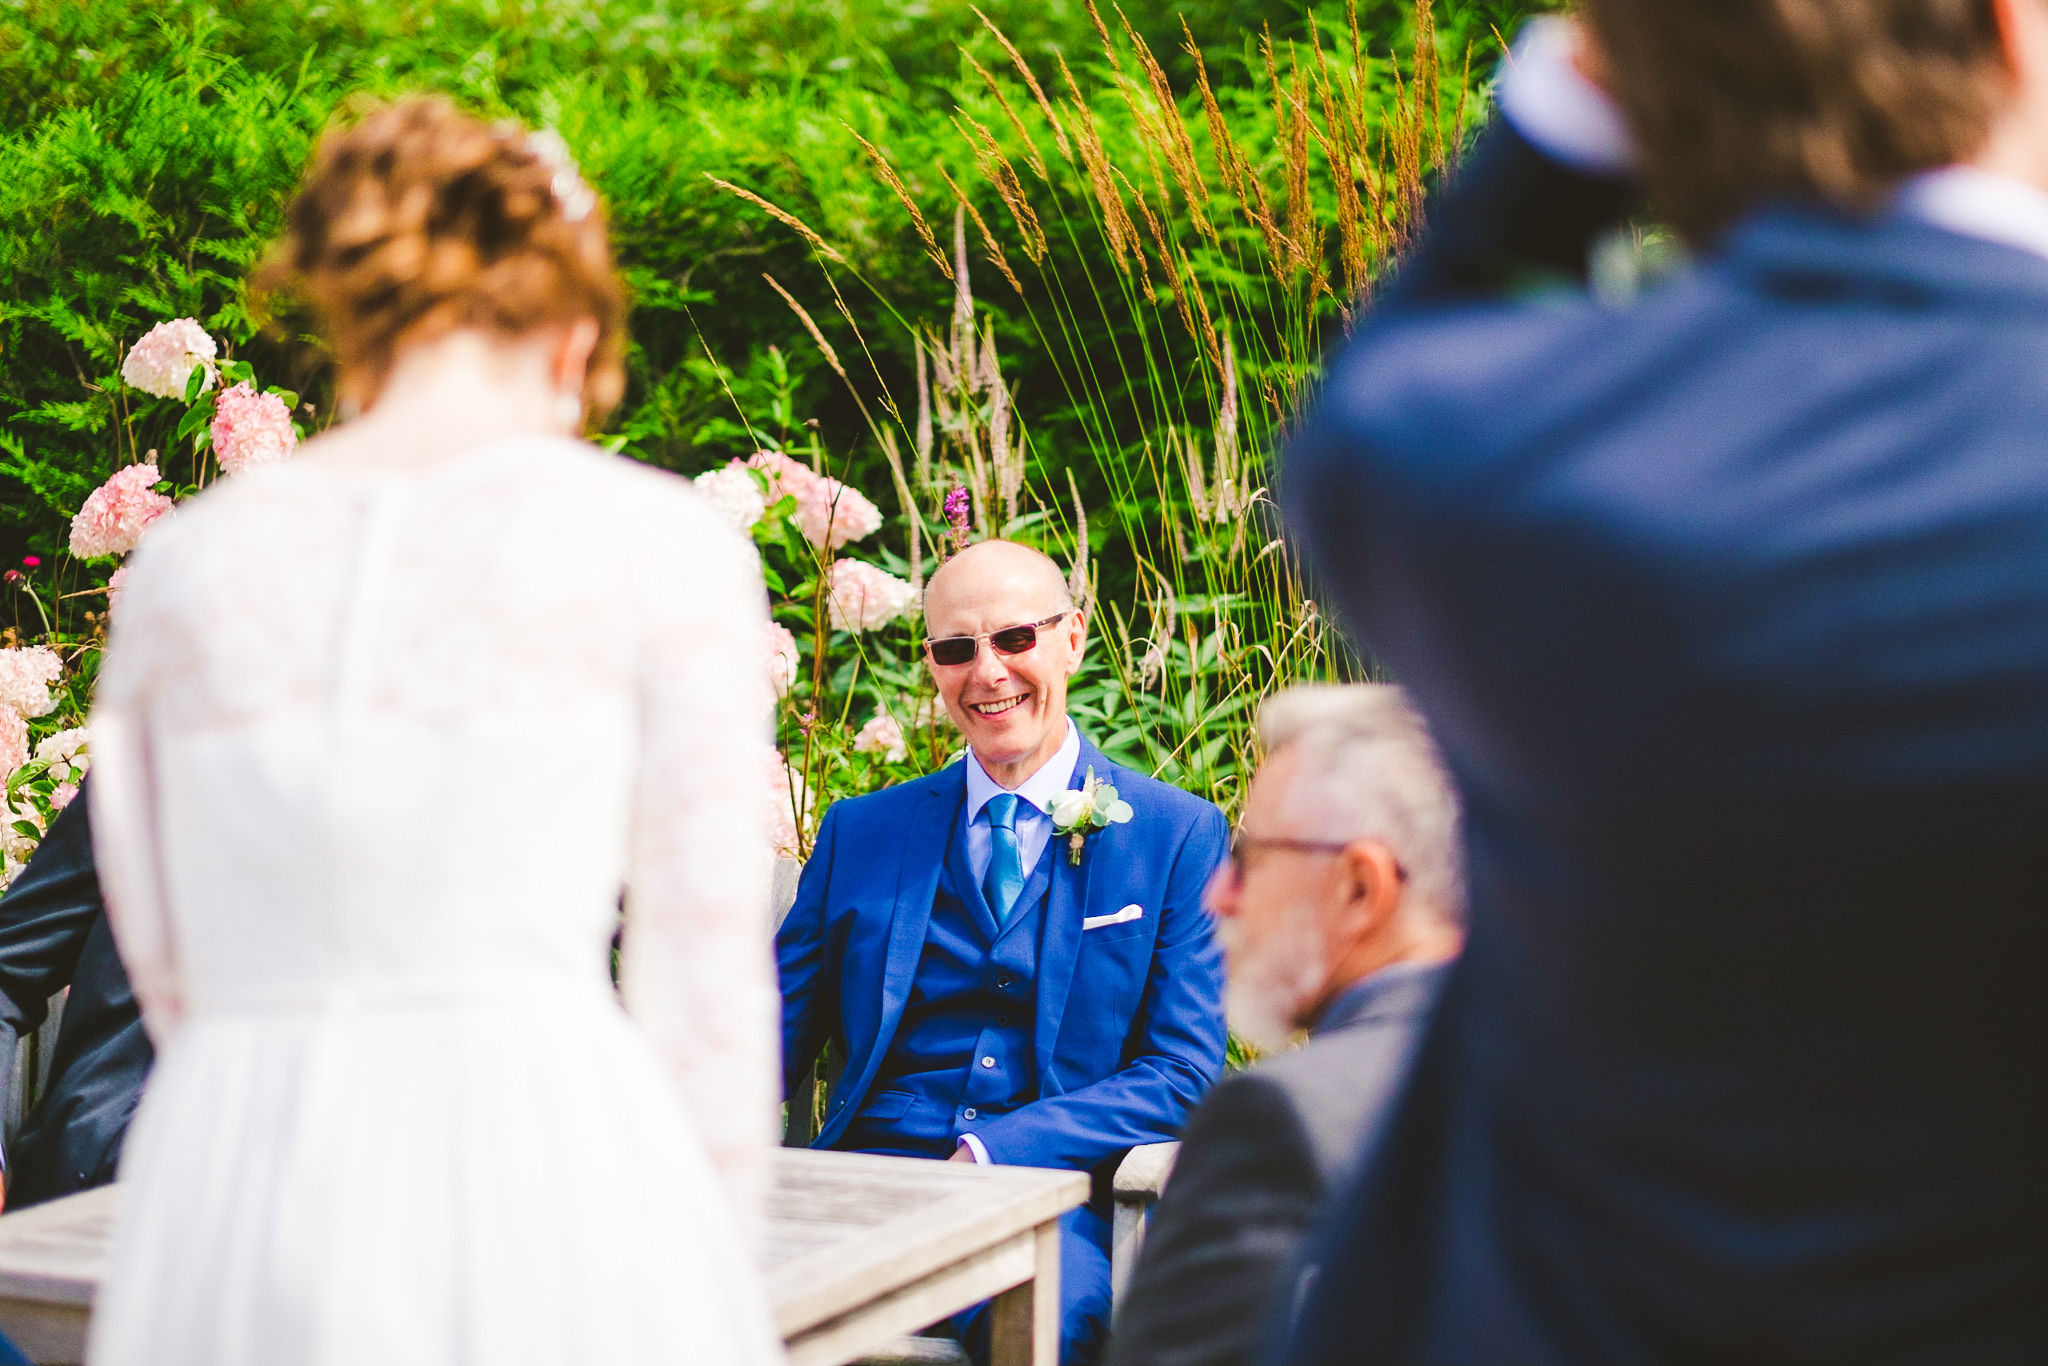 The father of the bride laughs at the bride's joke